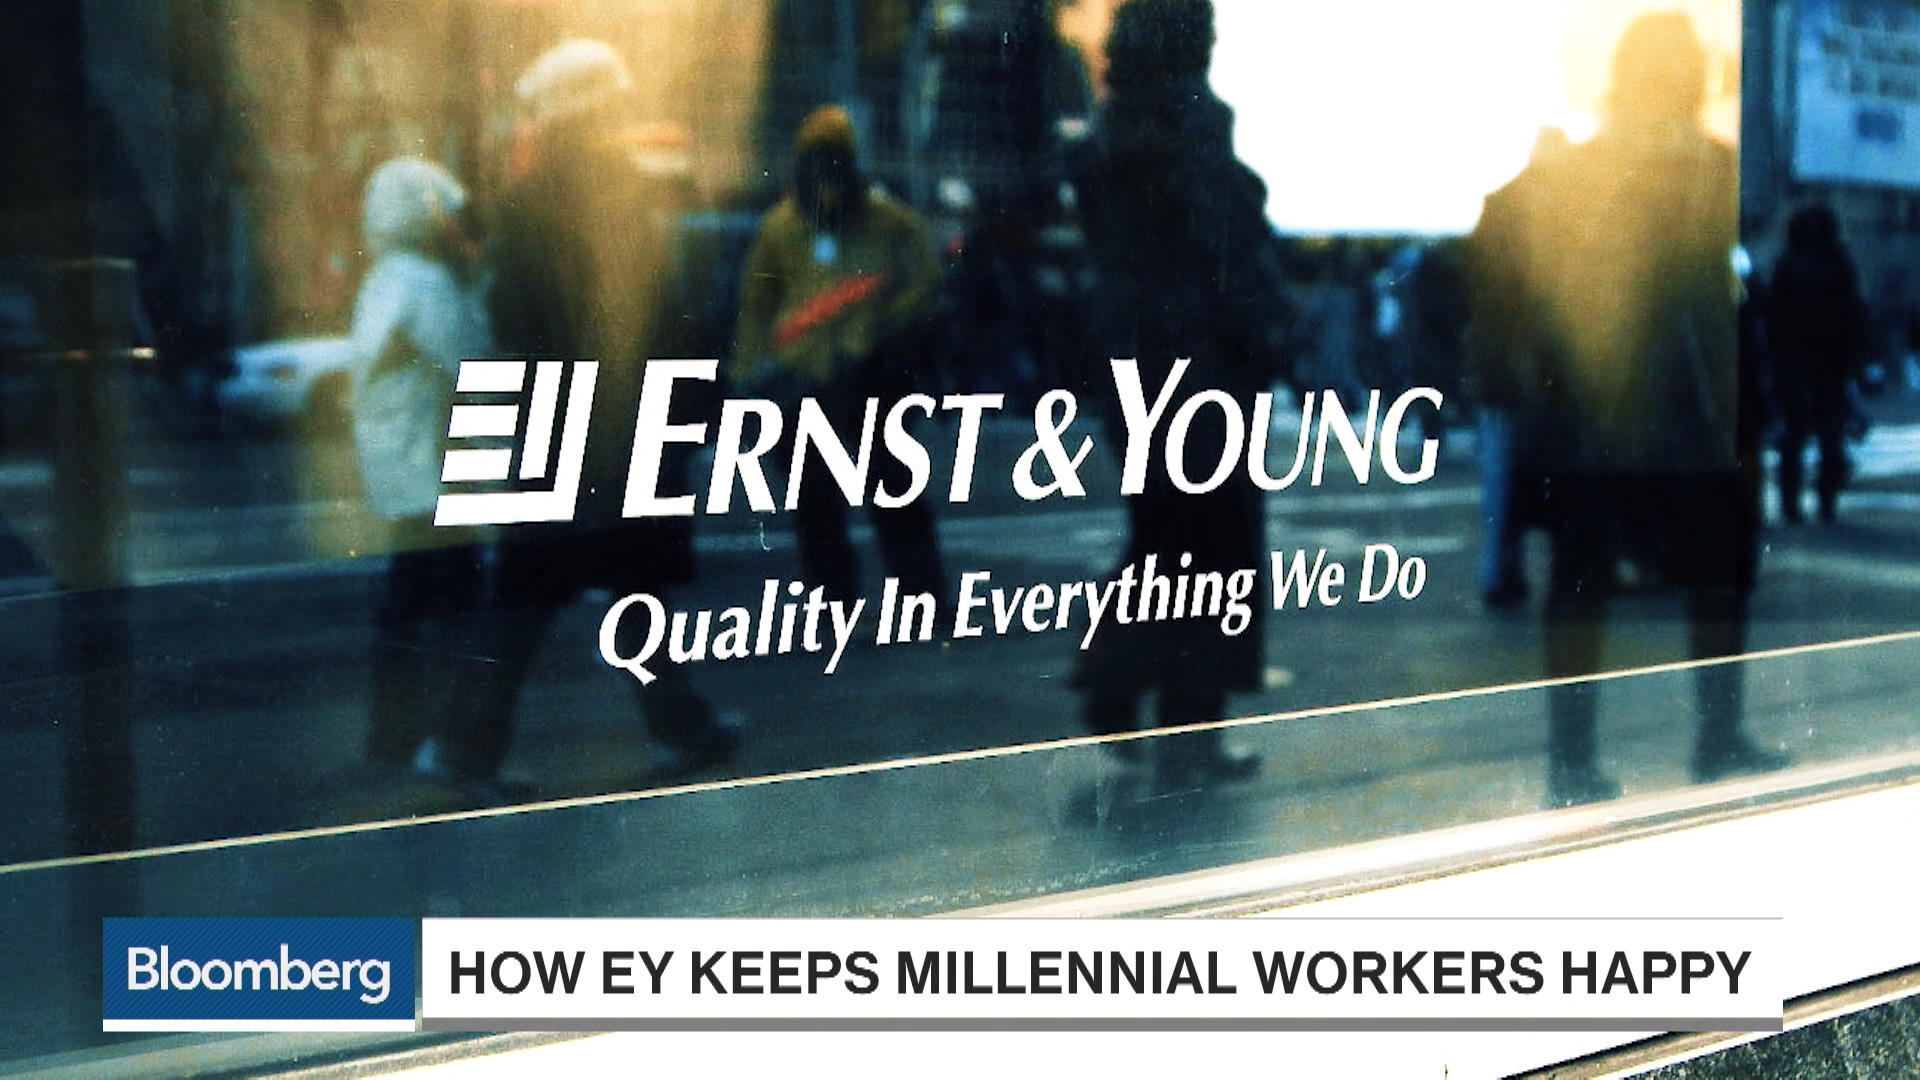 An Accounting Giant on Keeping Millennial Employees Happy